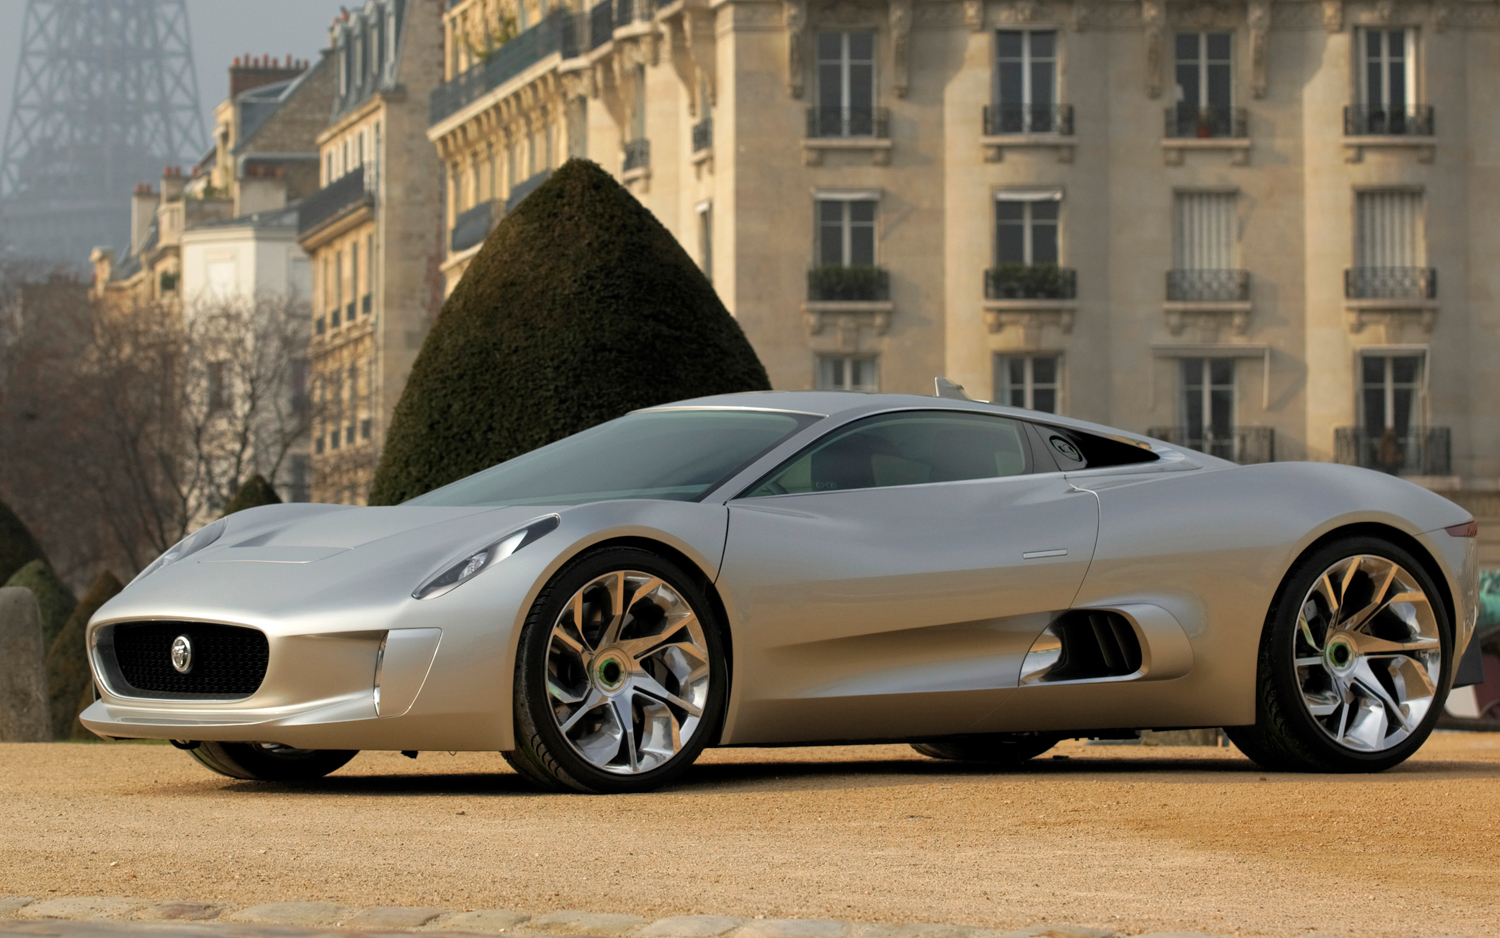 hight resolution of we hear jaguar c x75 will rev to 10 000 rpm use 500 hp 1 6l engine